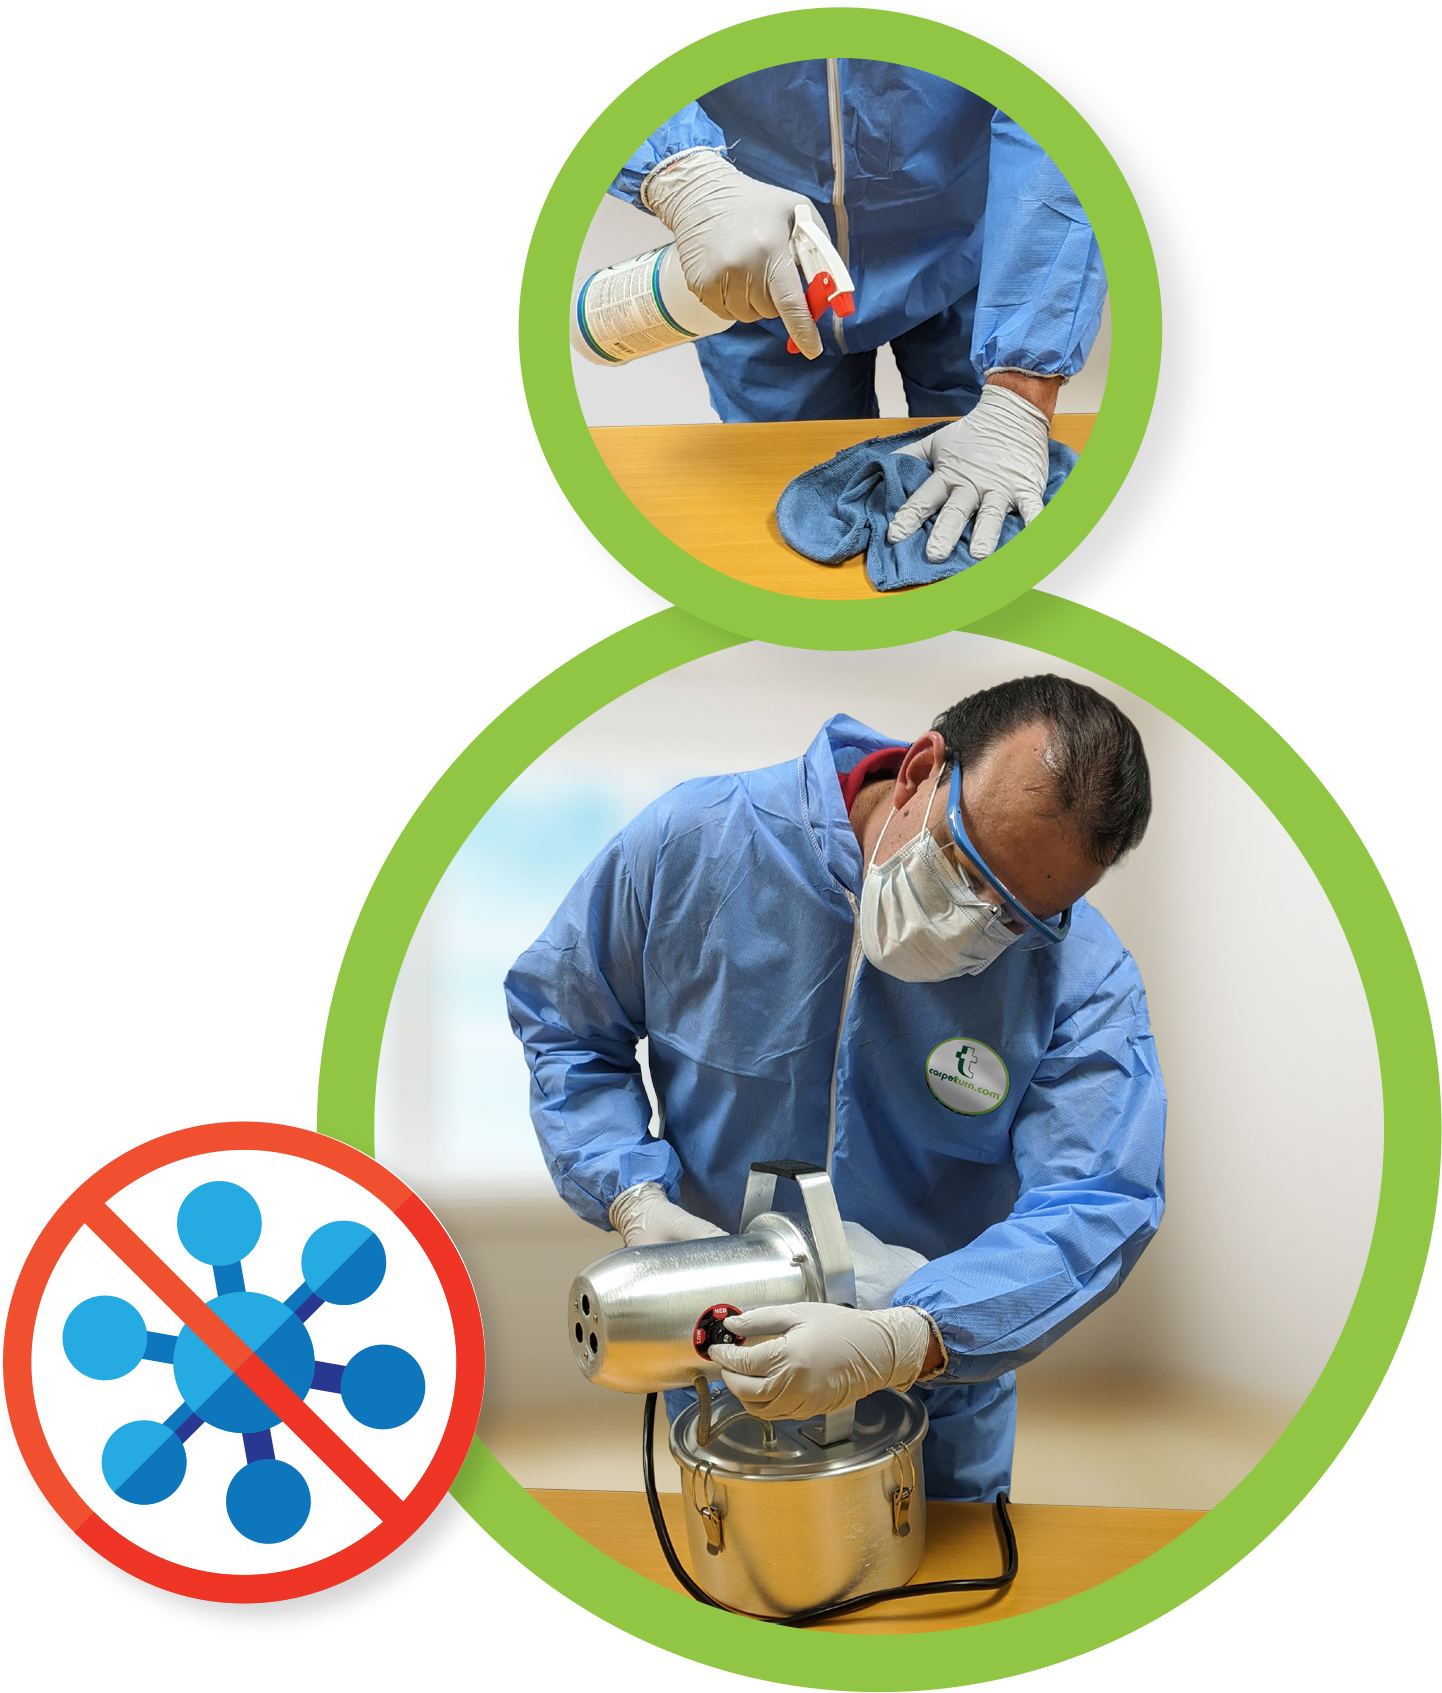 2-step cleaning process